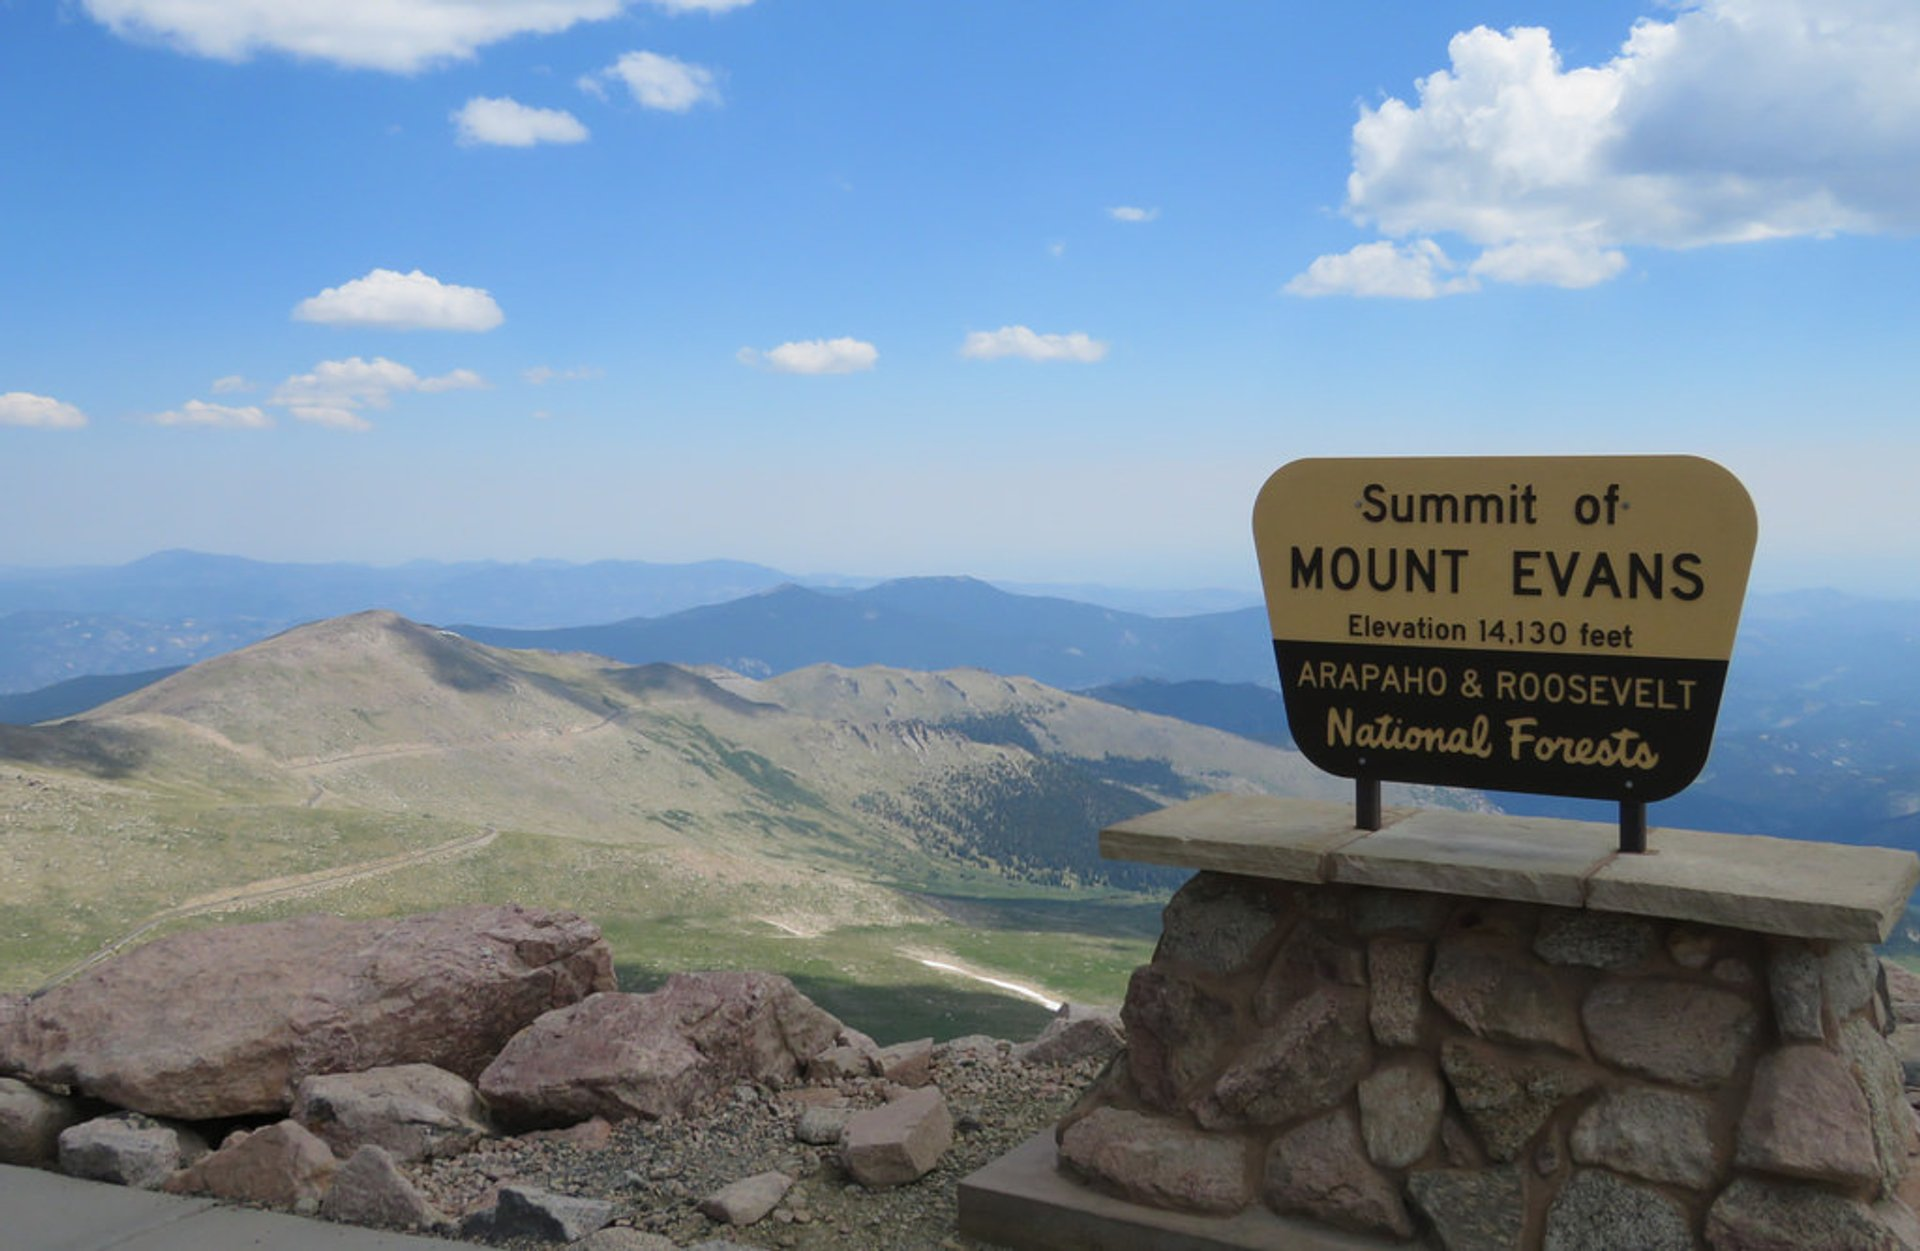 At the summit of Mount Evans 2019